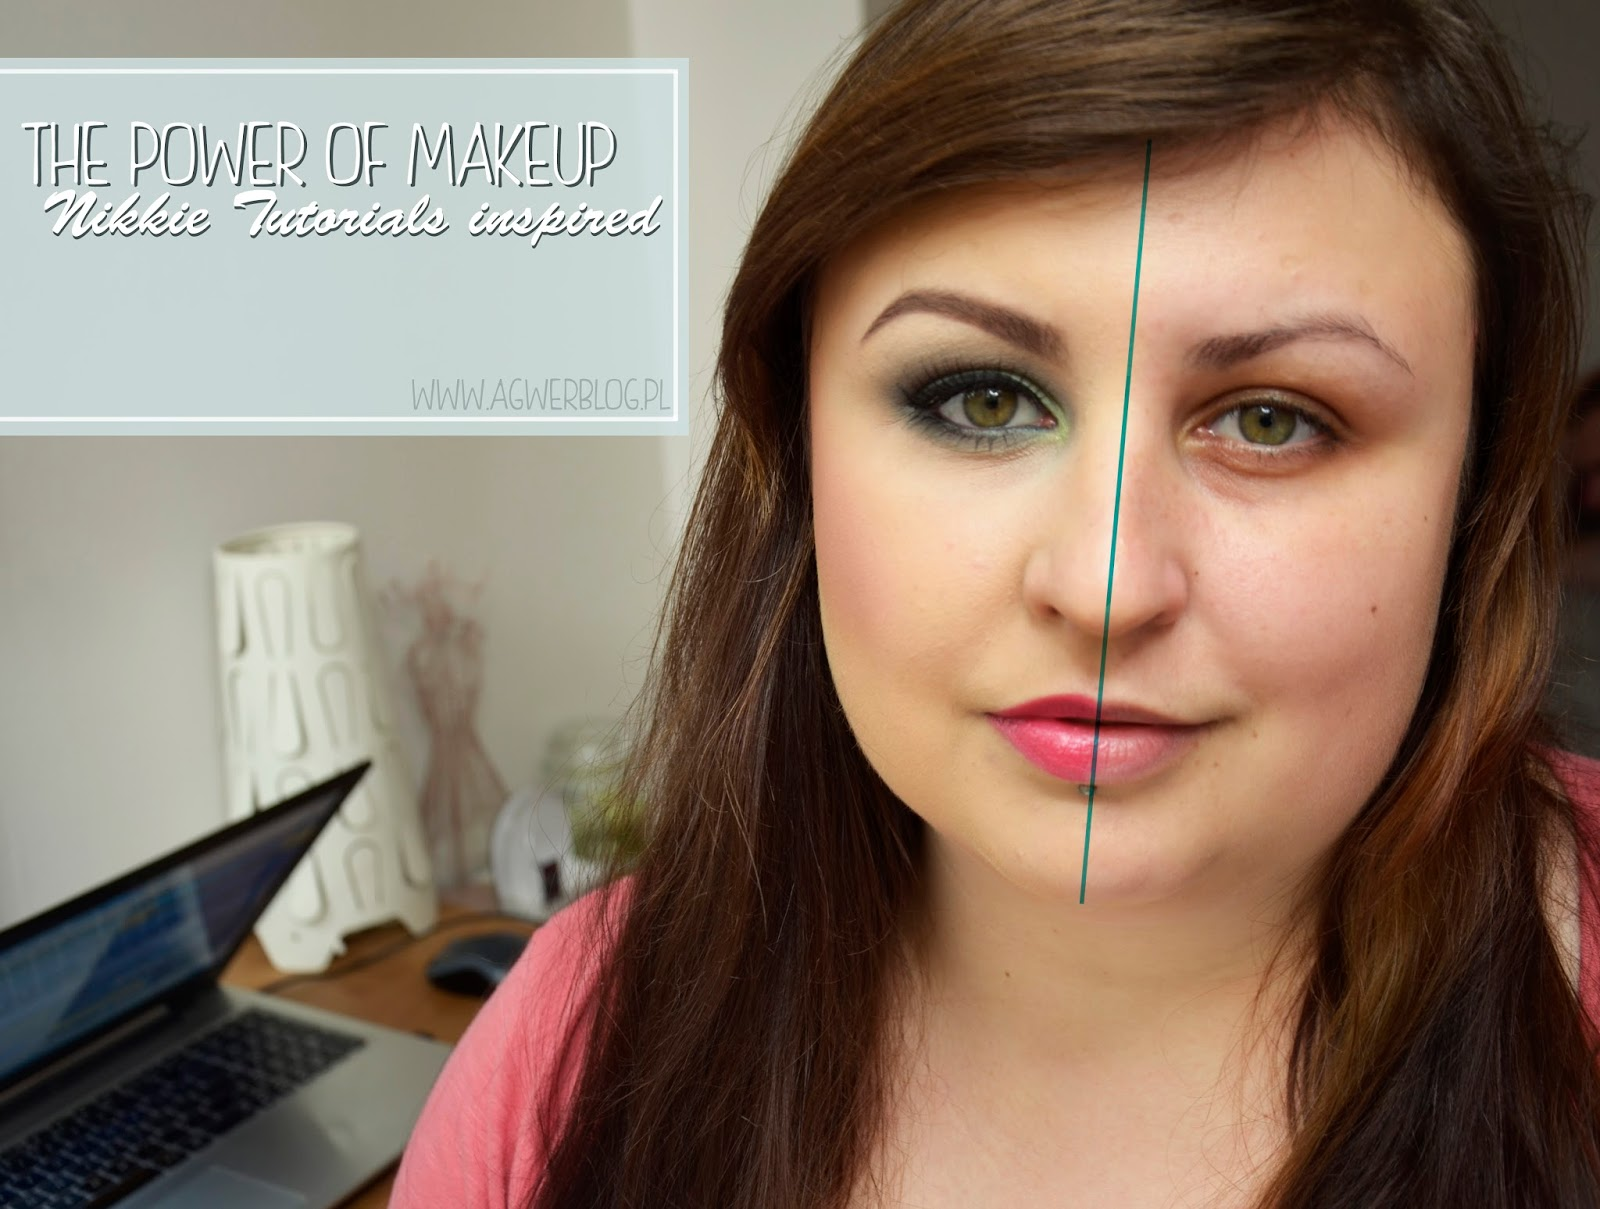 The Power of makeup: Nikkie Tutorials inspired